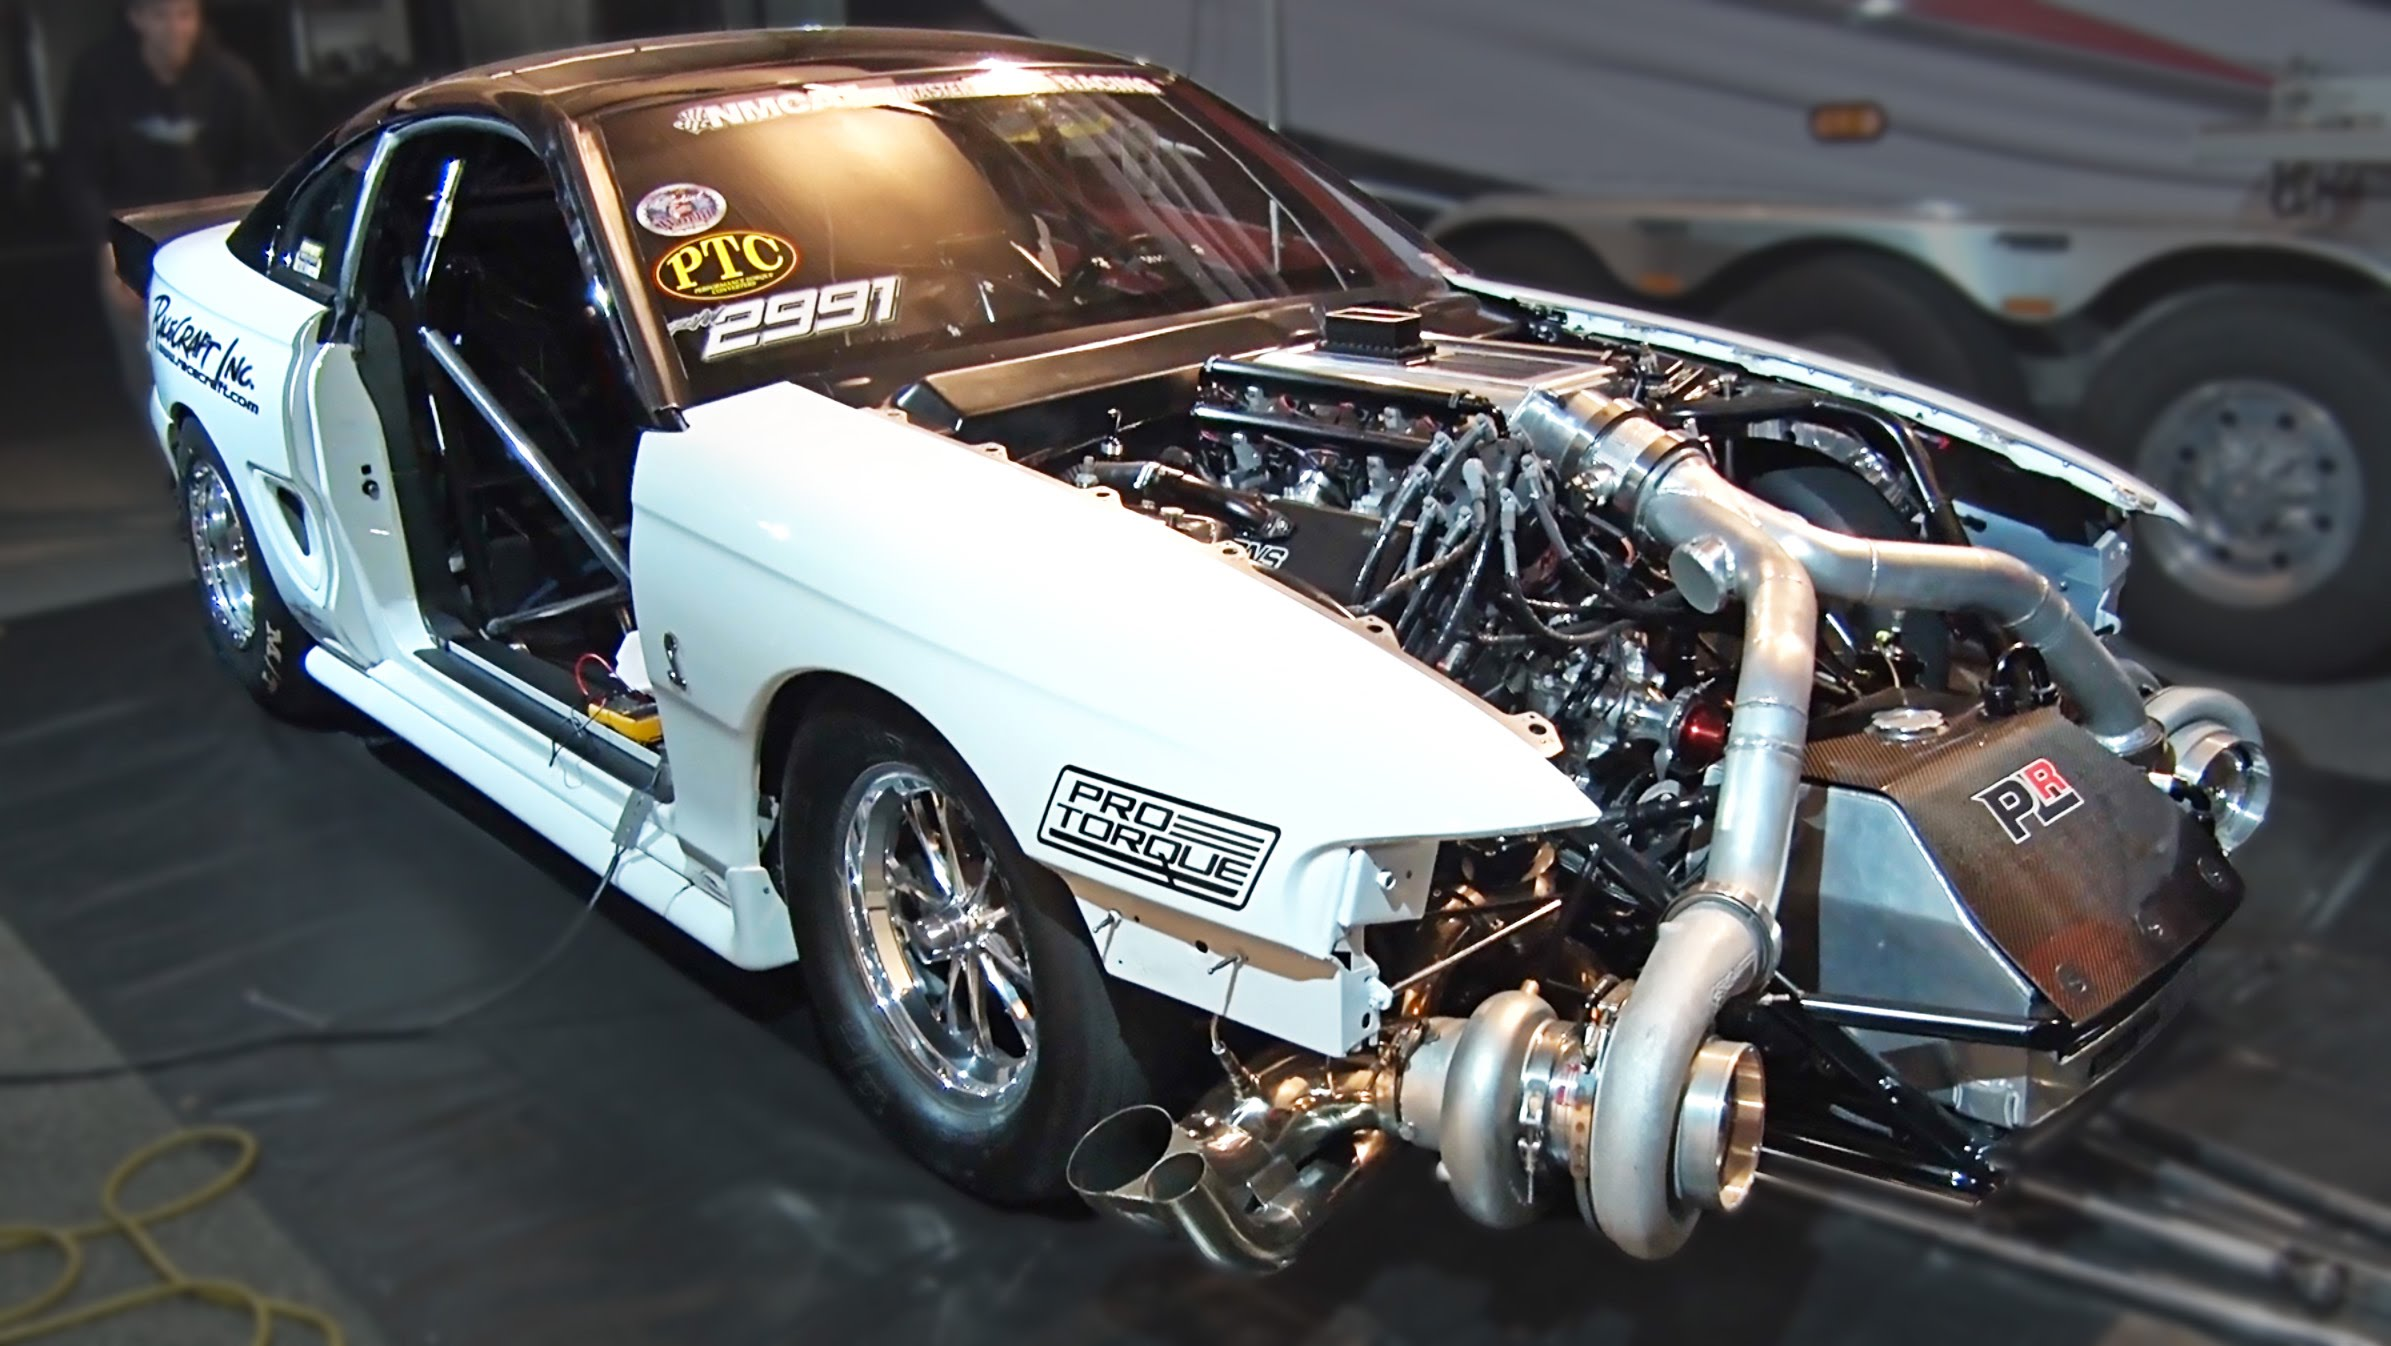 Cash Cars Kc >> 102MM Turbocharger + SN95 Ford Mustang = An Epic Twin Turbo Drag Racing Muscle Car